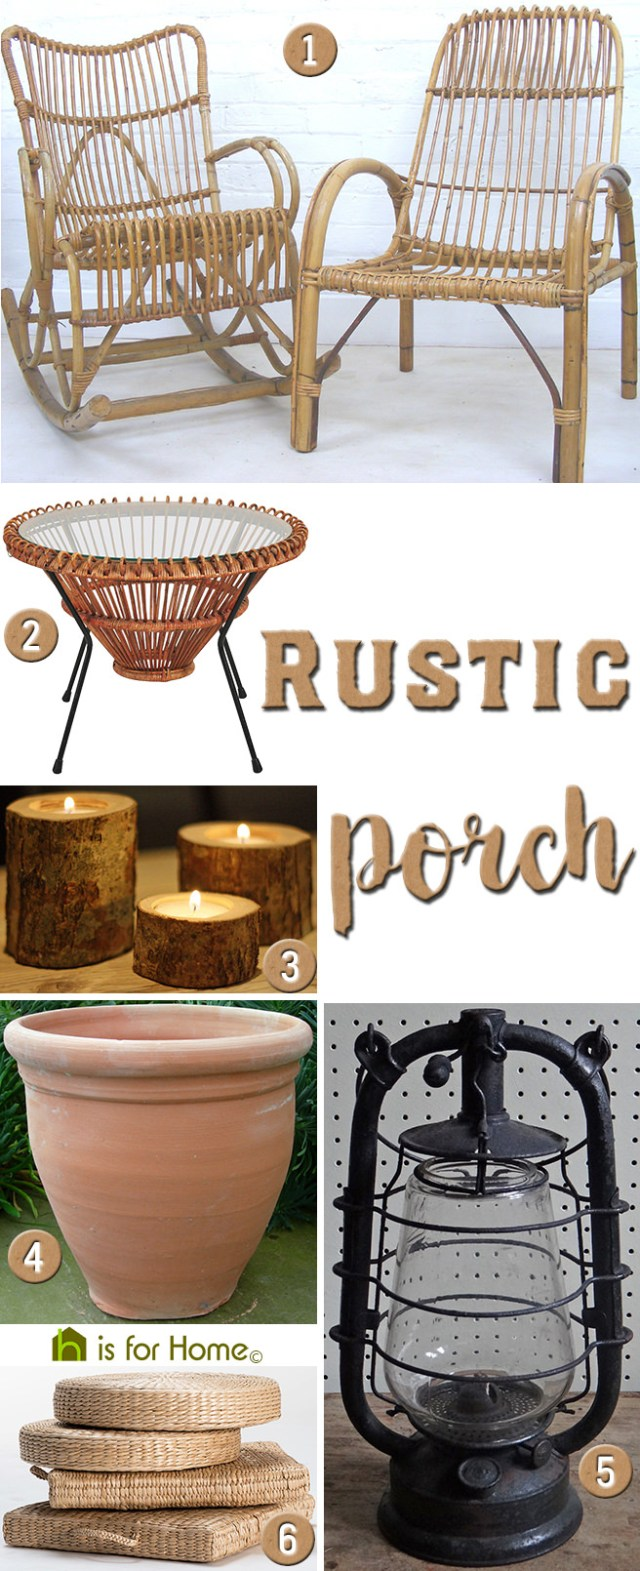 Get their look: Rustic porch | H is for Home